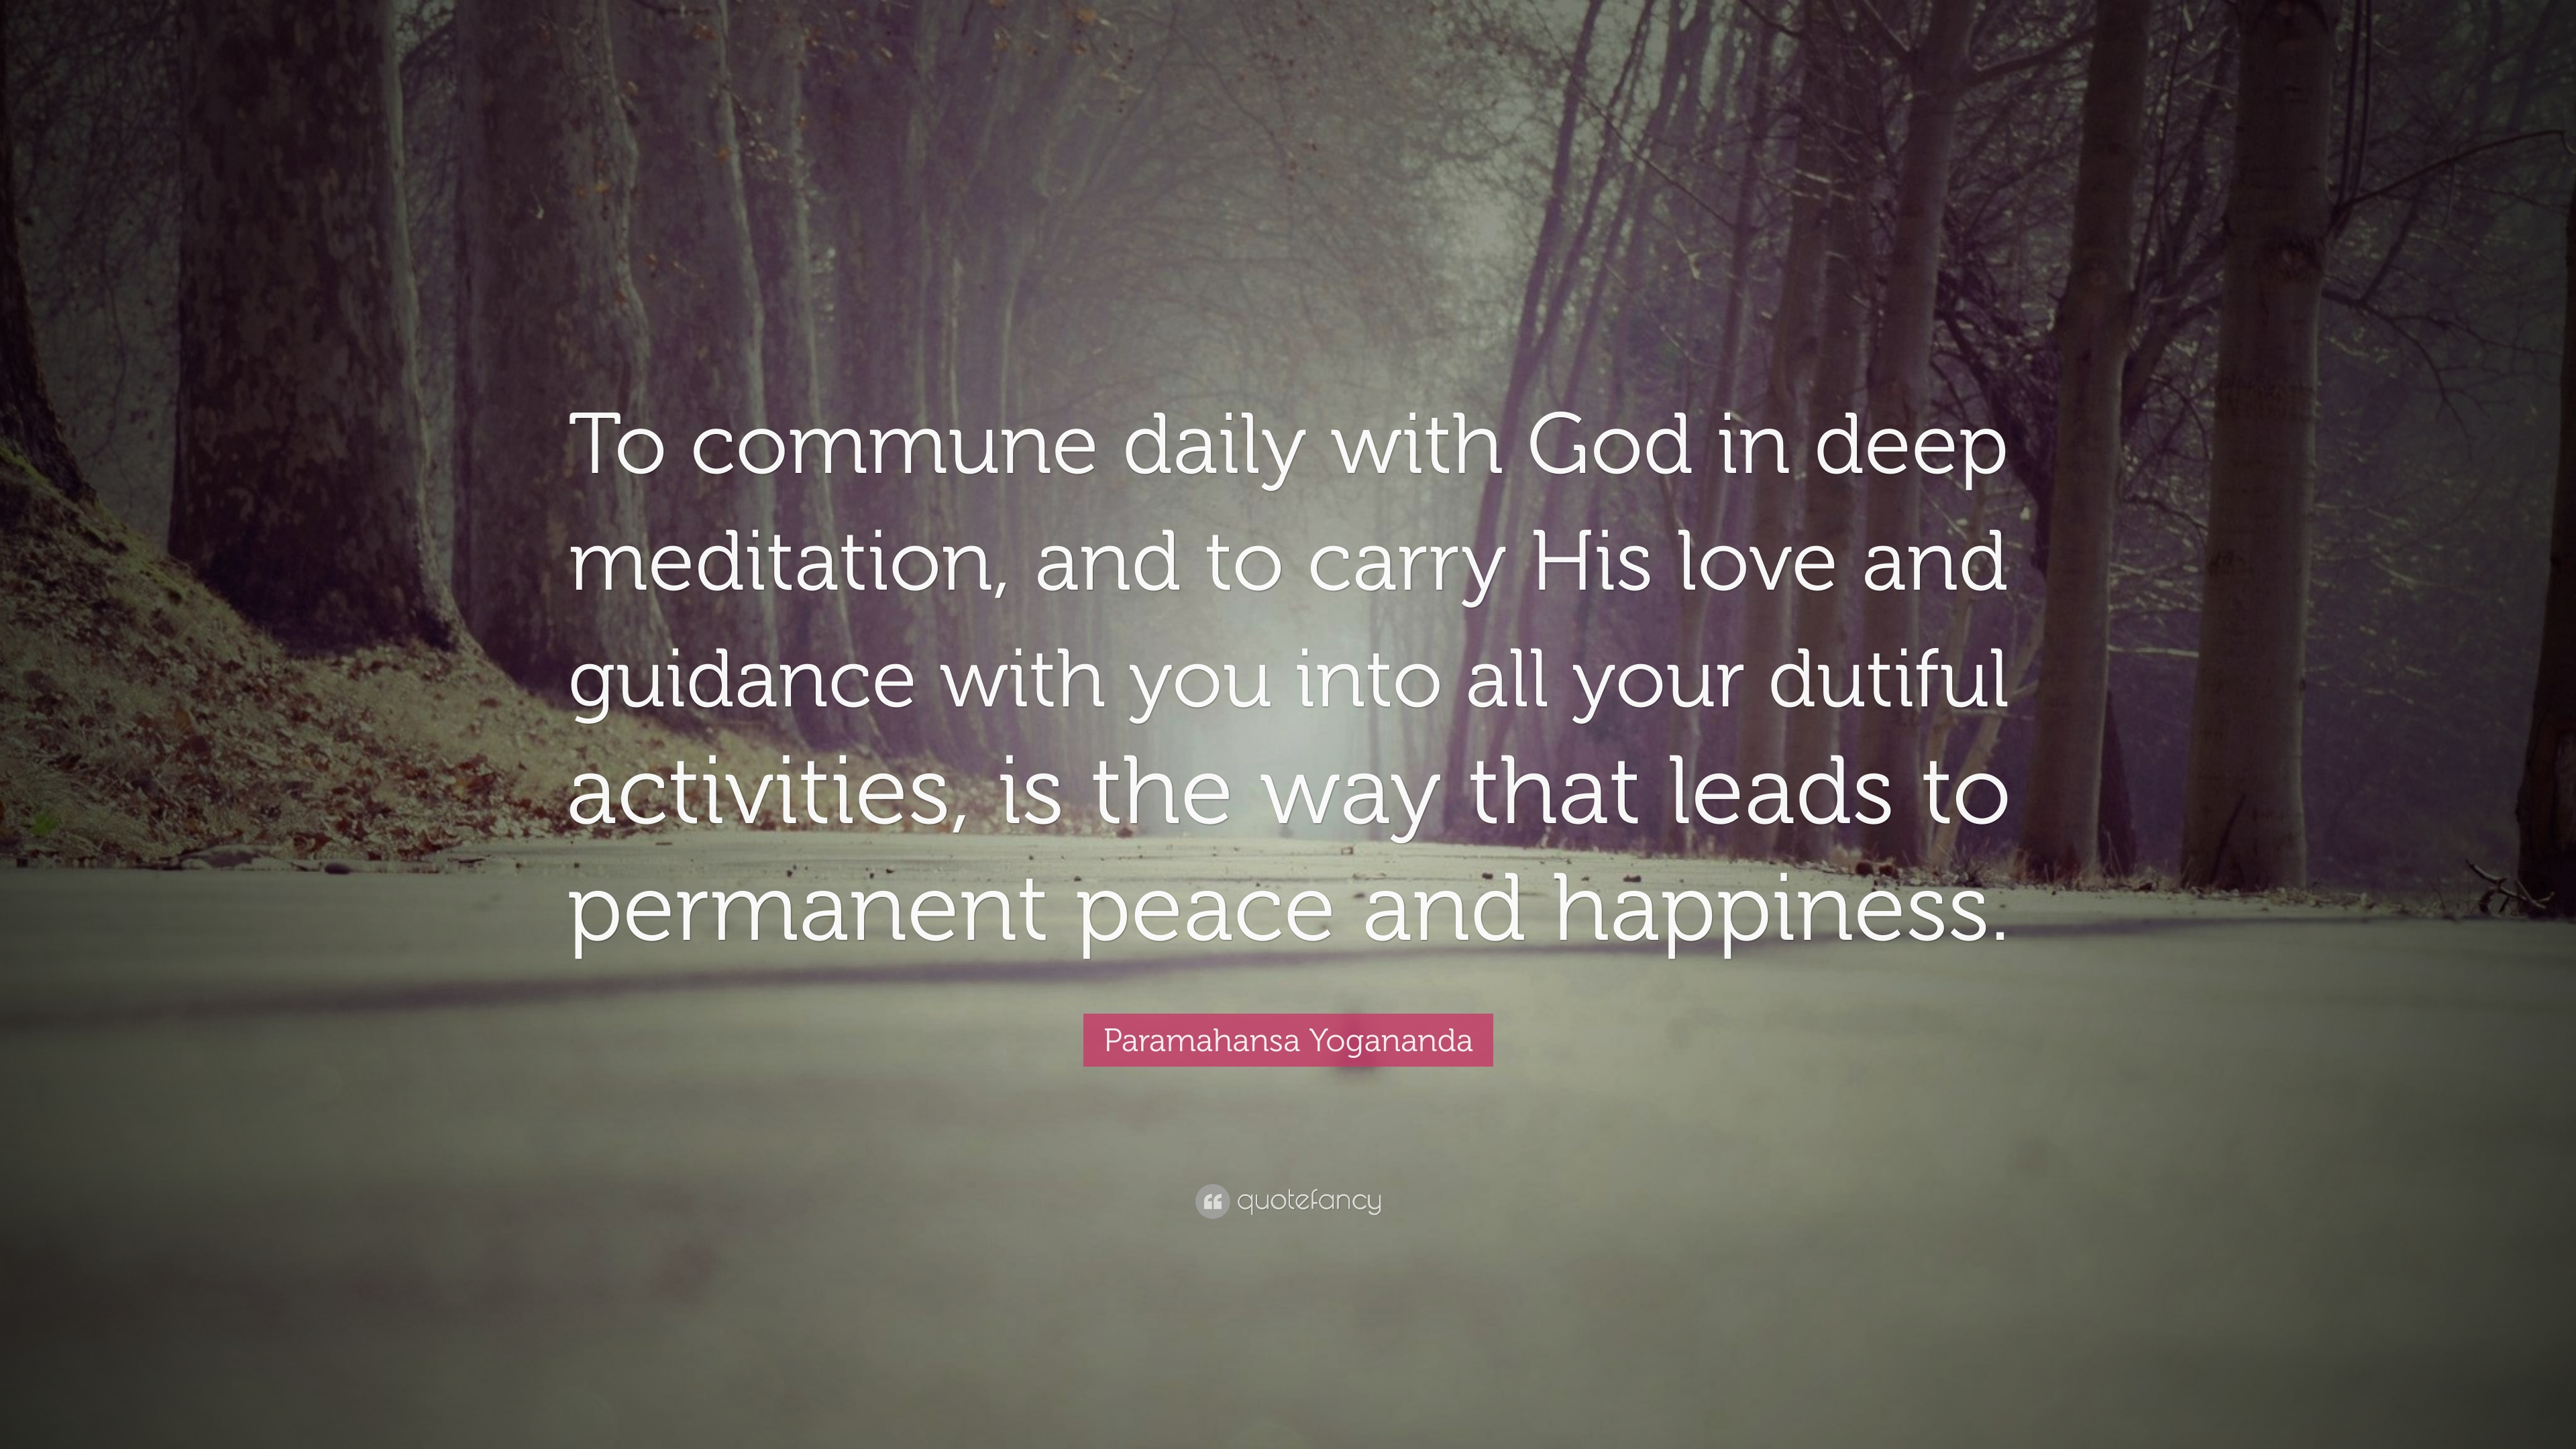 Image of: Spiritual Paramahansa Yogananda Quote to Commune Daily With God In Deep Meditation And To Quotefancy Paramahansa Yogananda Quote to Commune Daily With God In Deep